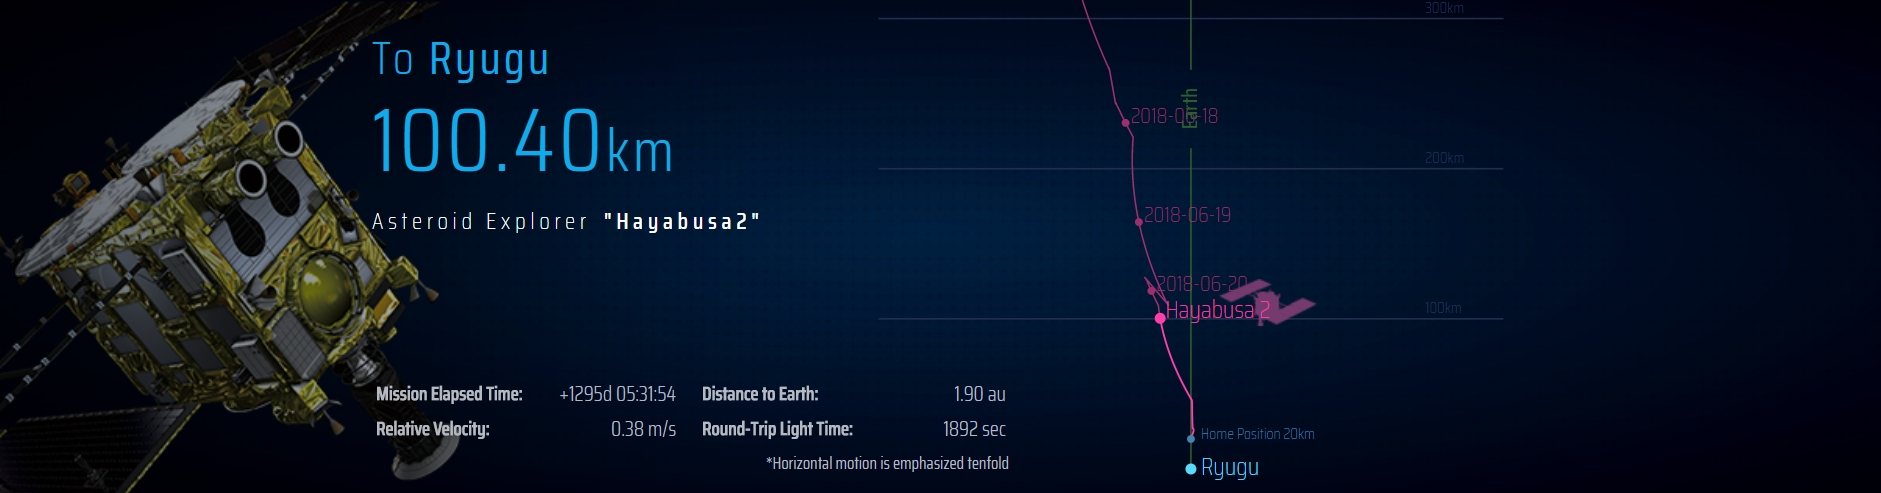 http://wonderousworlds.space/_/hayabusa2_at_100km_diagram.jpg